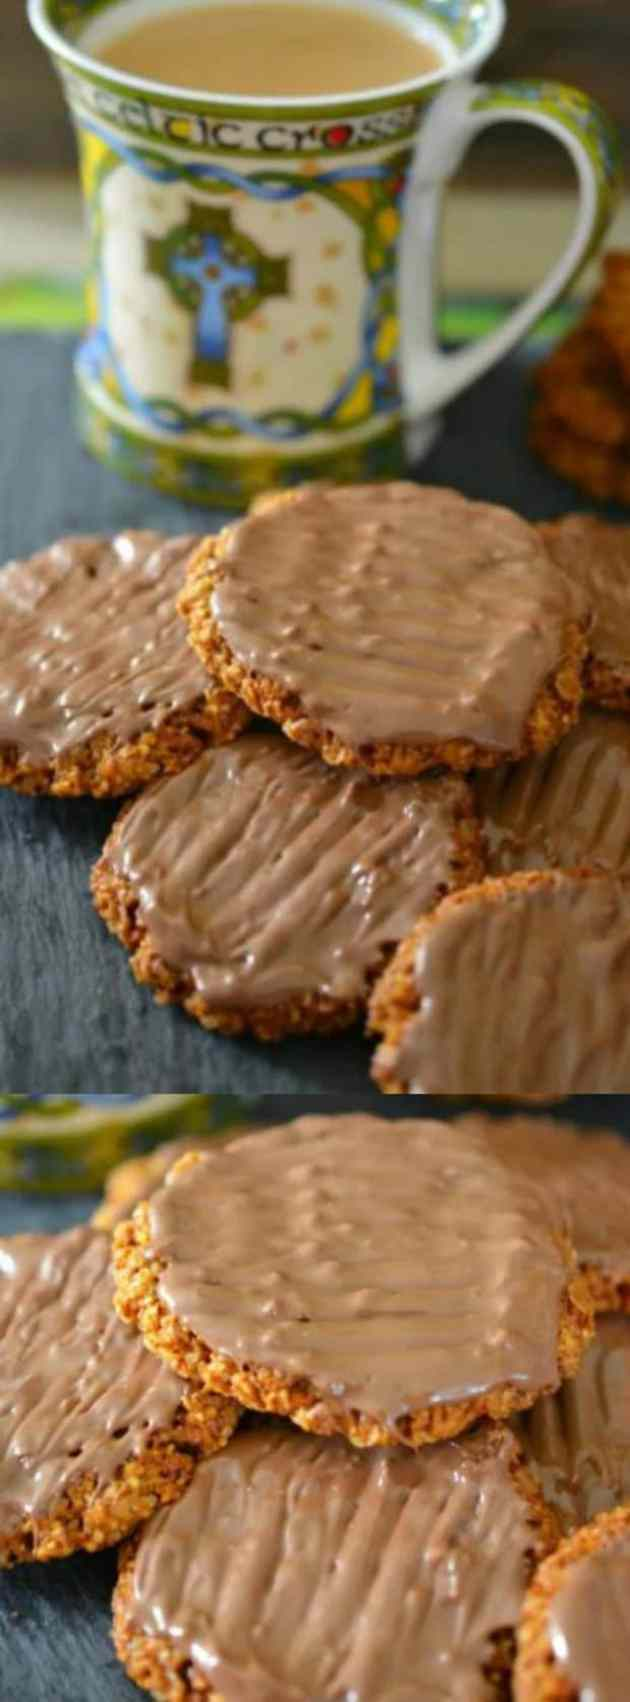 chocolate coated Hobnob Biscuits longpin